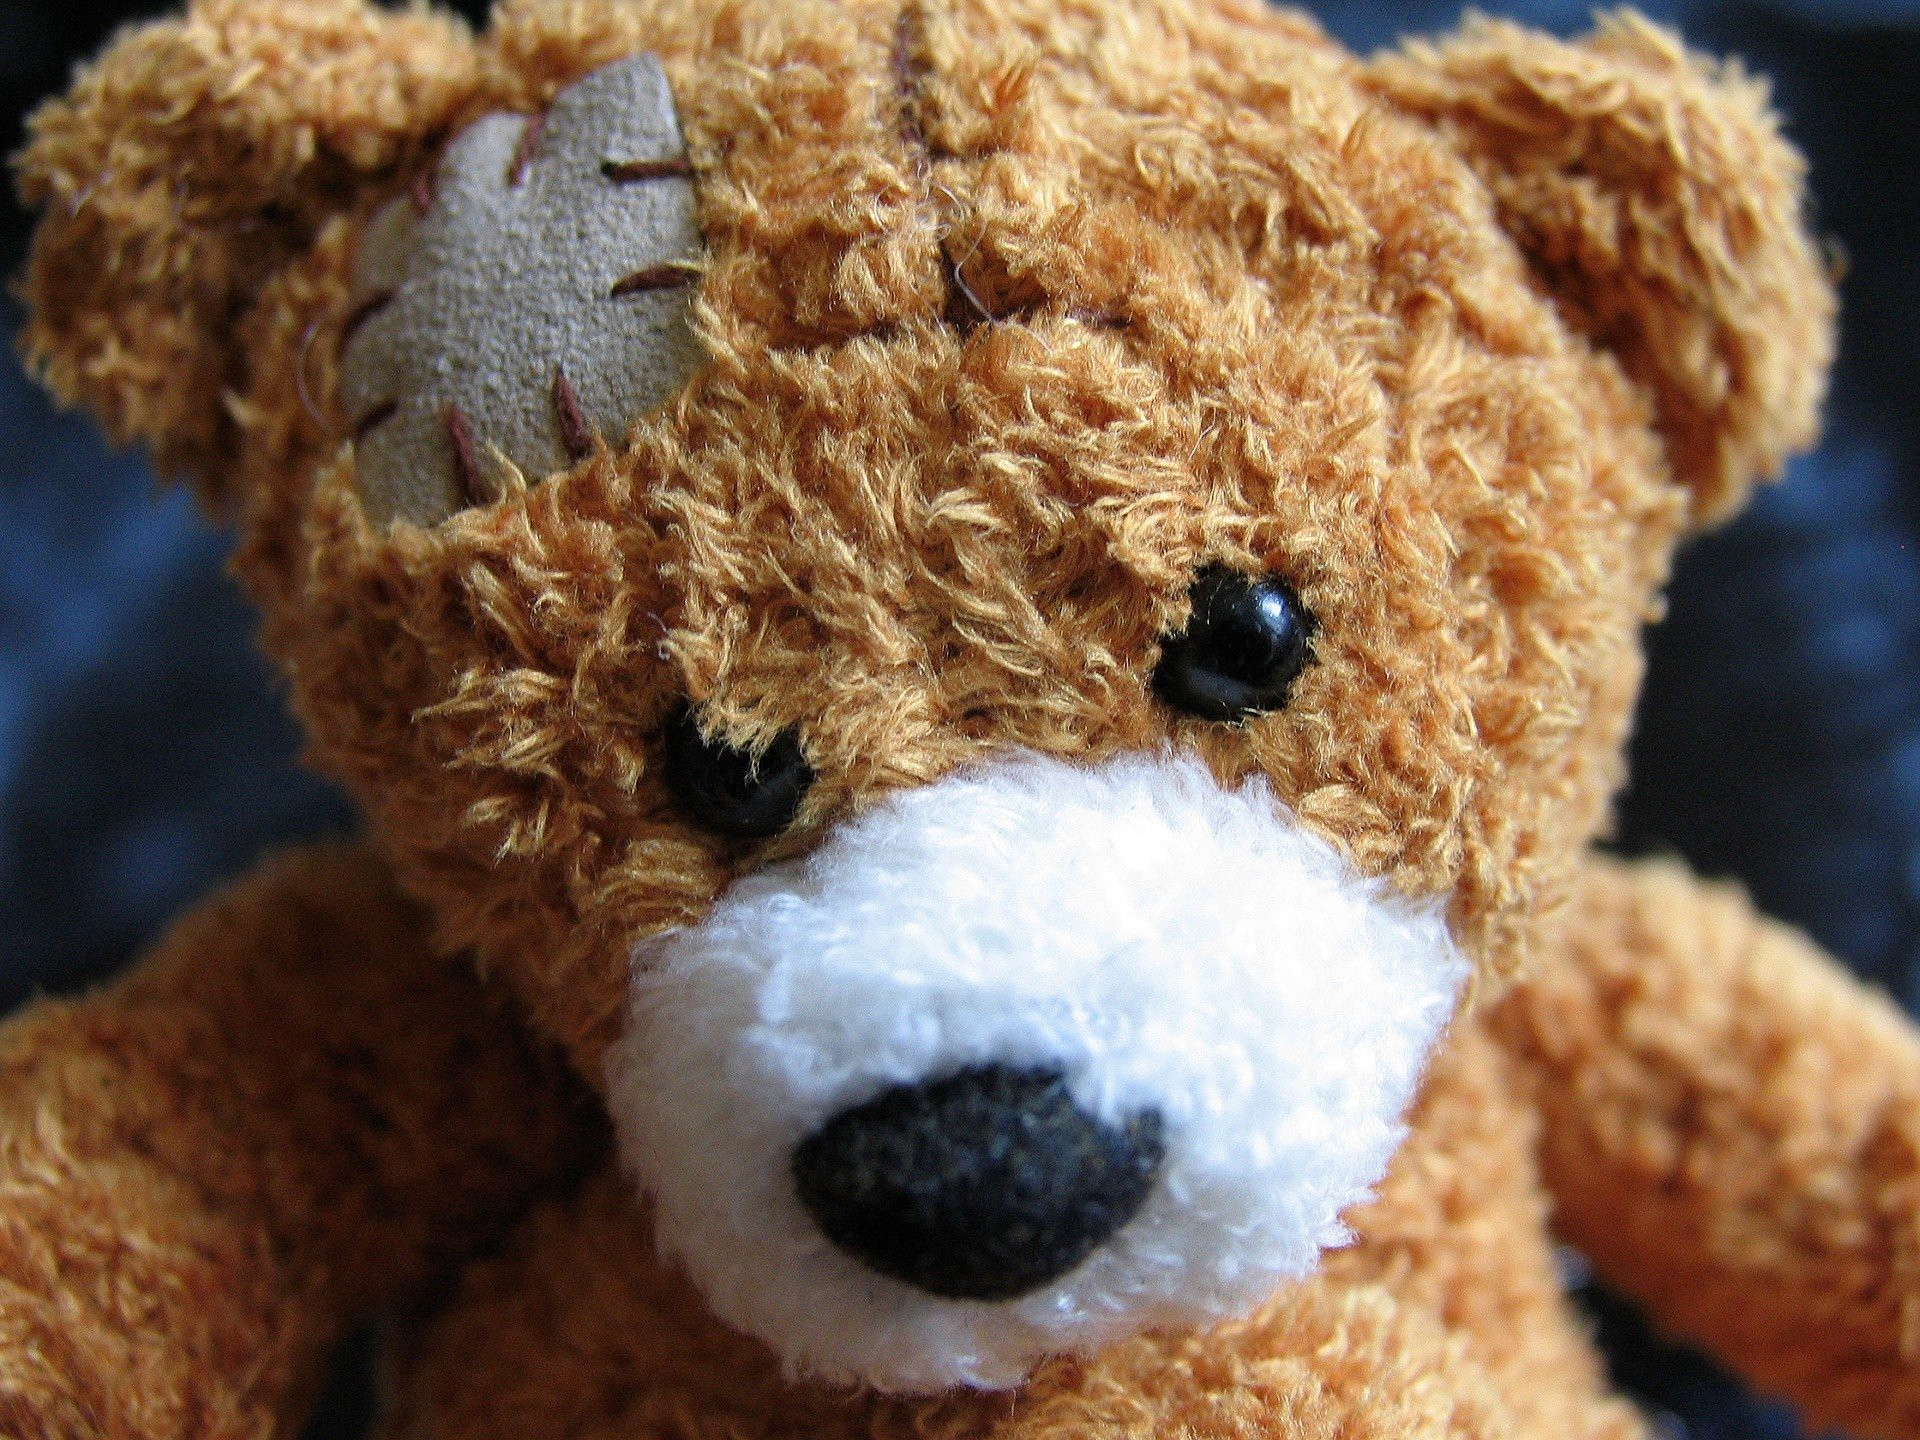 Injured teddy bear with patch over its eye